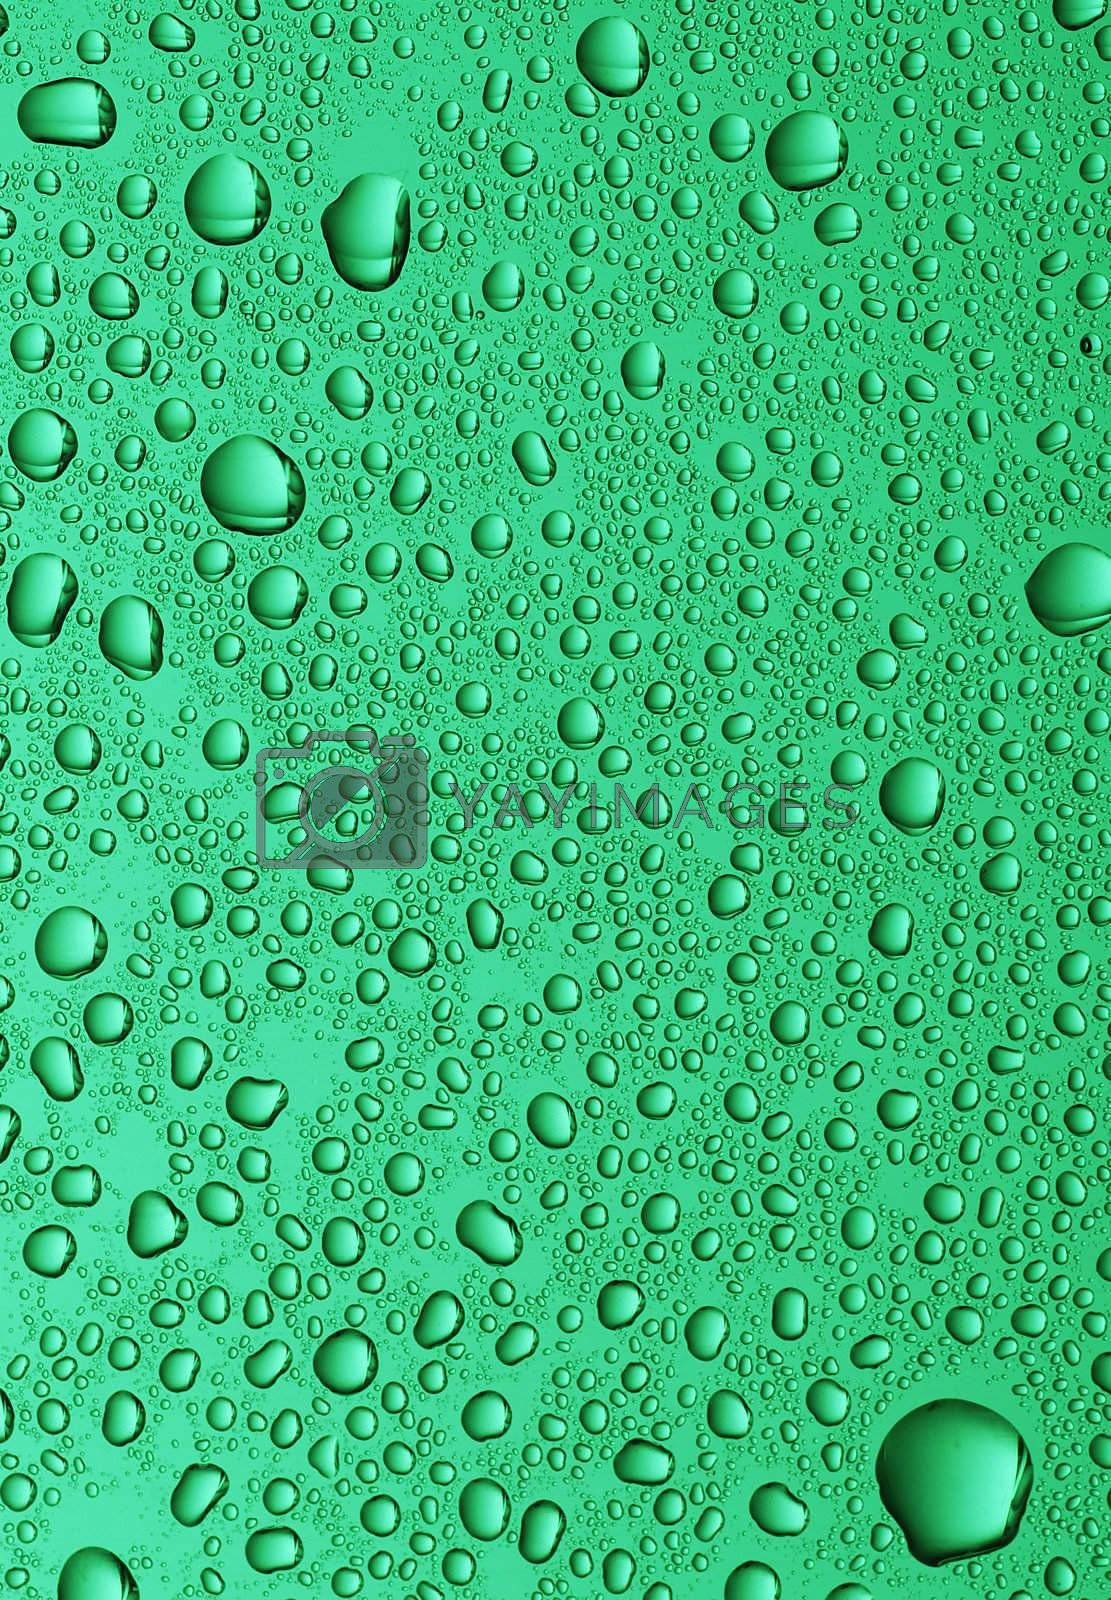 large water drops on green glass background